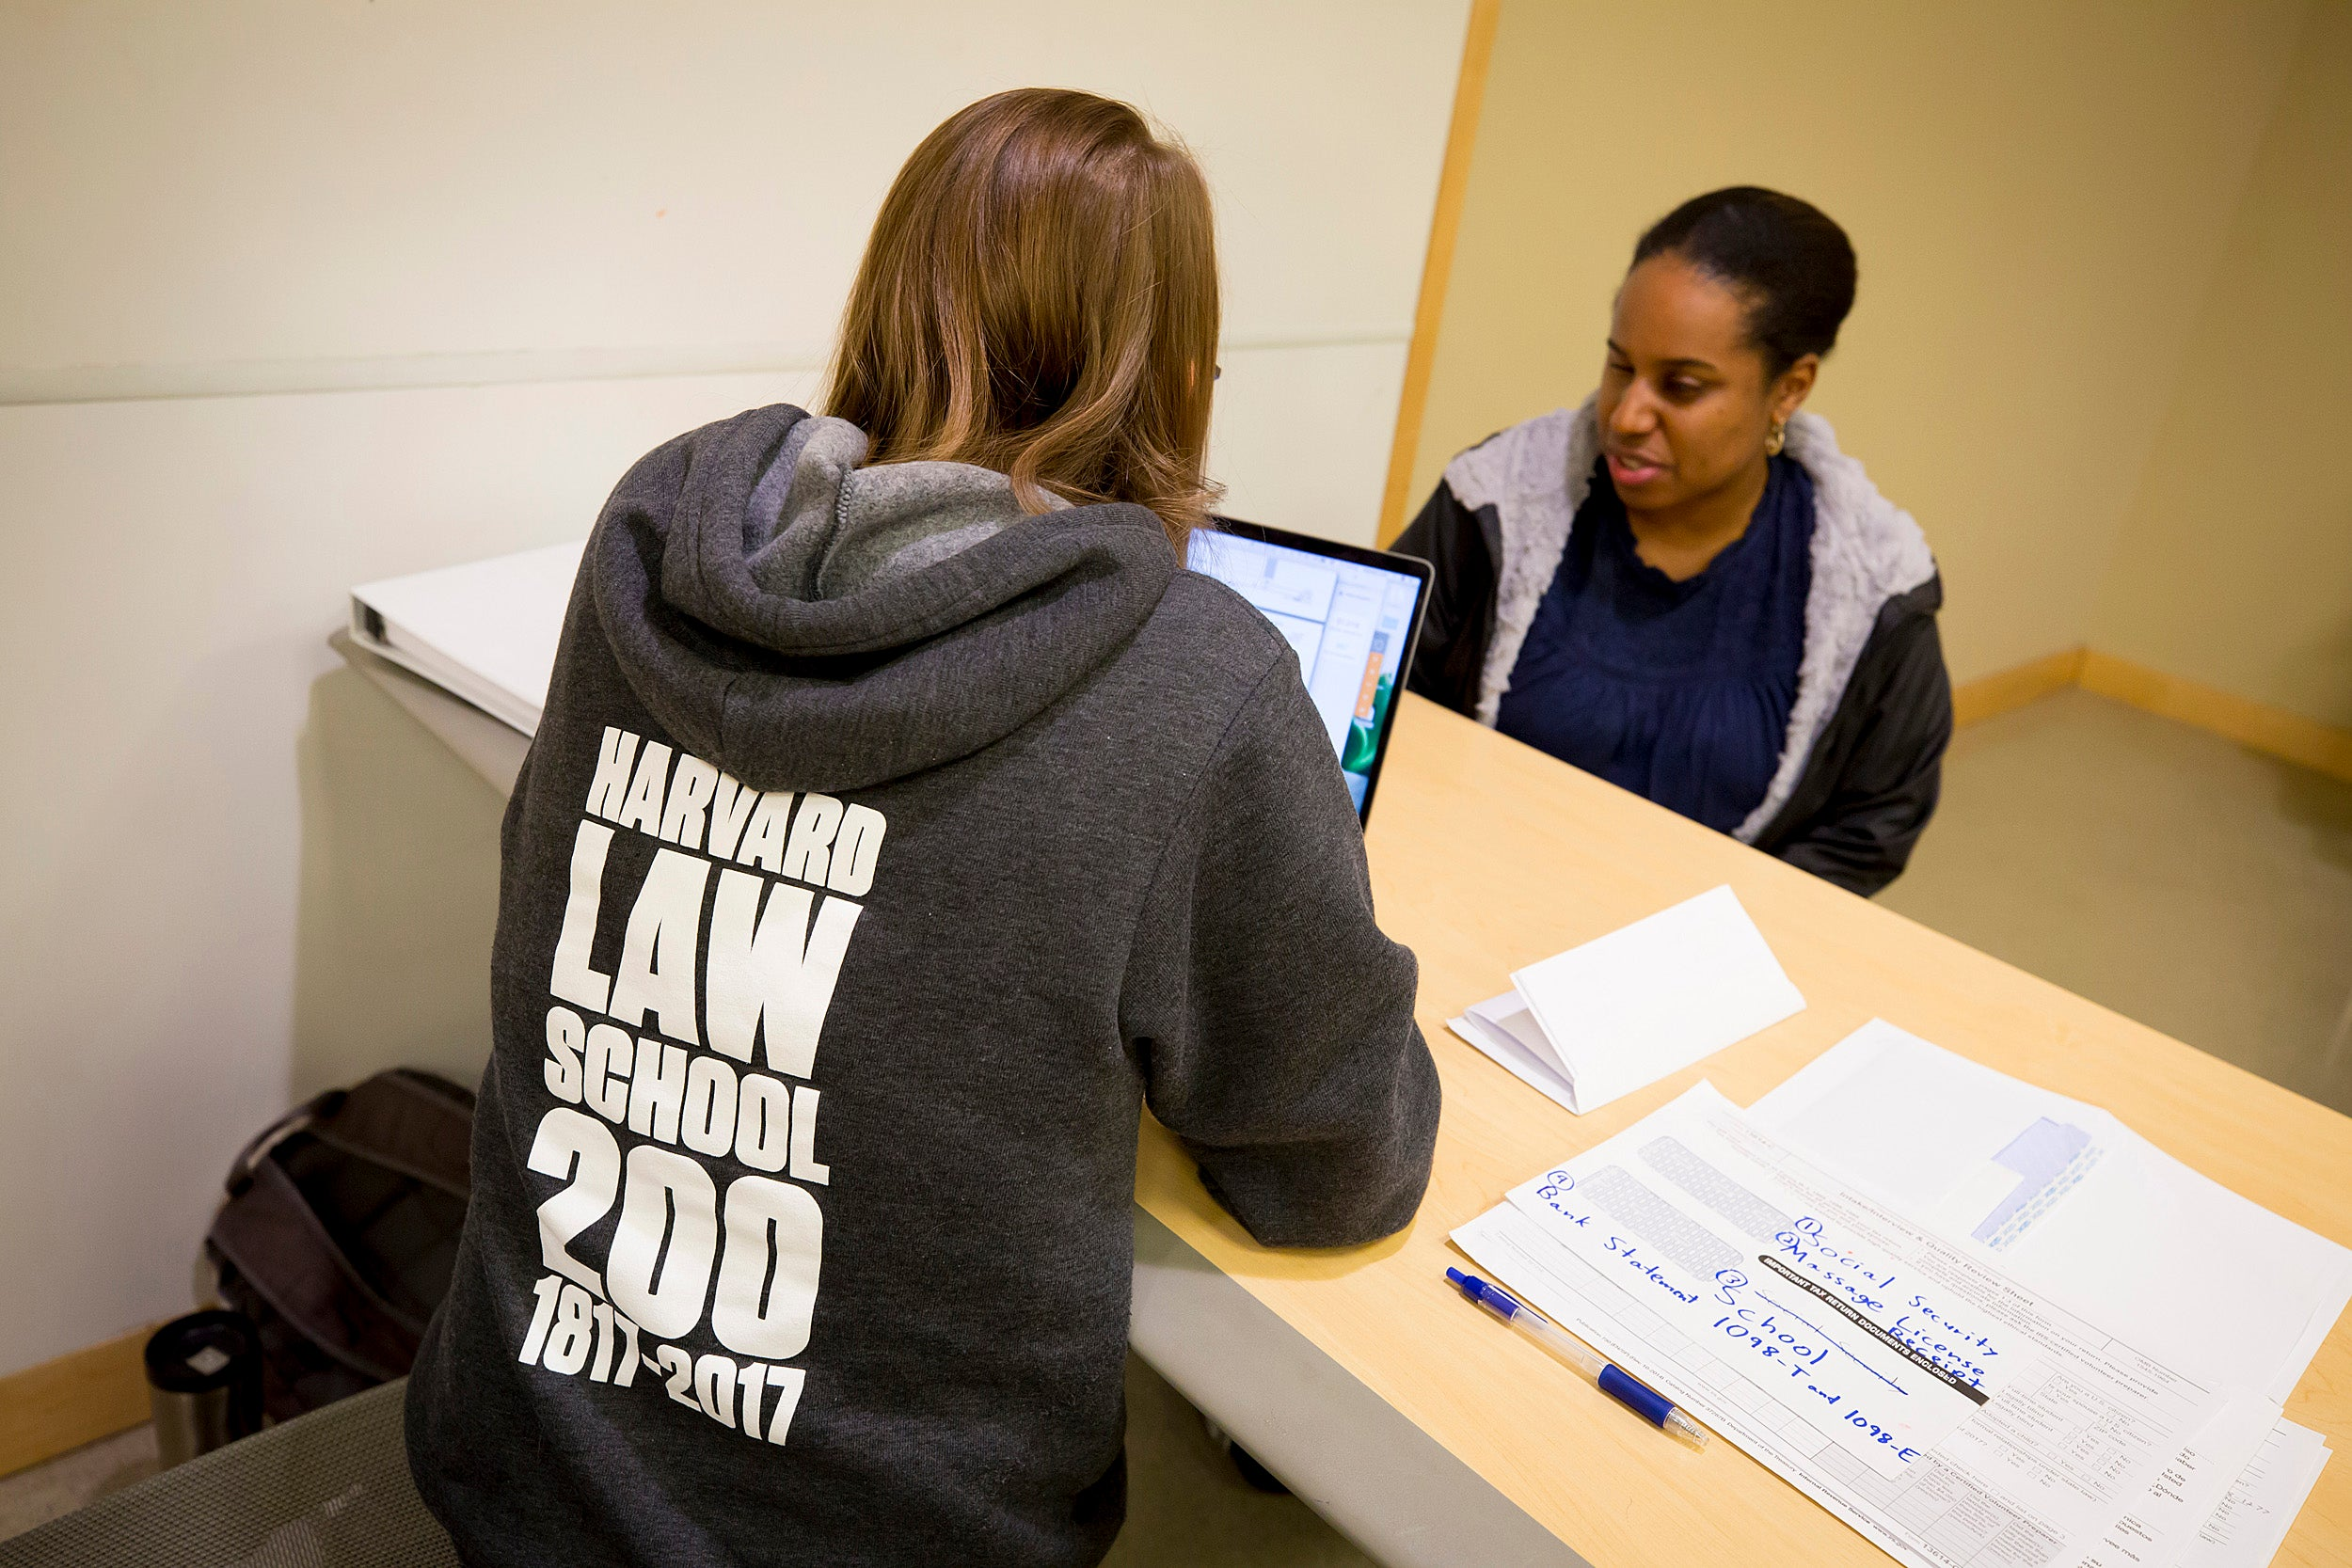 Rebekah Holtz, J.D. '19 (left), assists Claire Gauthier of Newton with her taxes as part of Harvard TaxHelp, a student-run organization that offers free assistance to low-income clients.